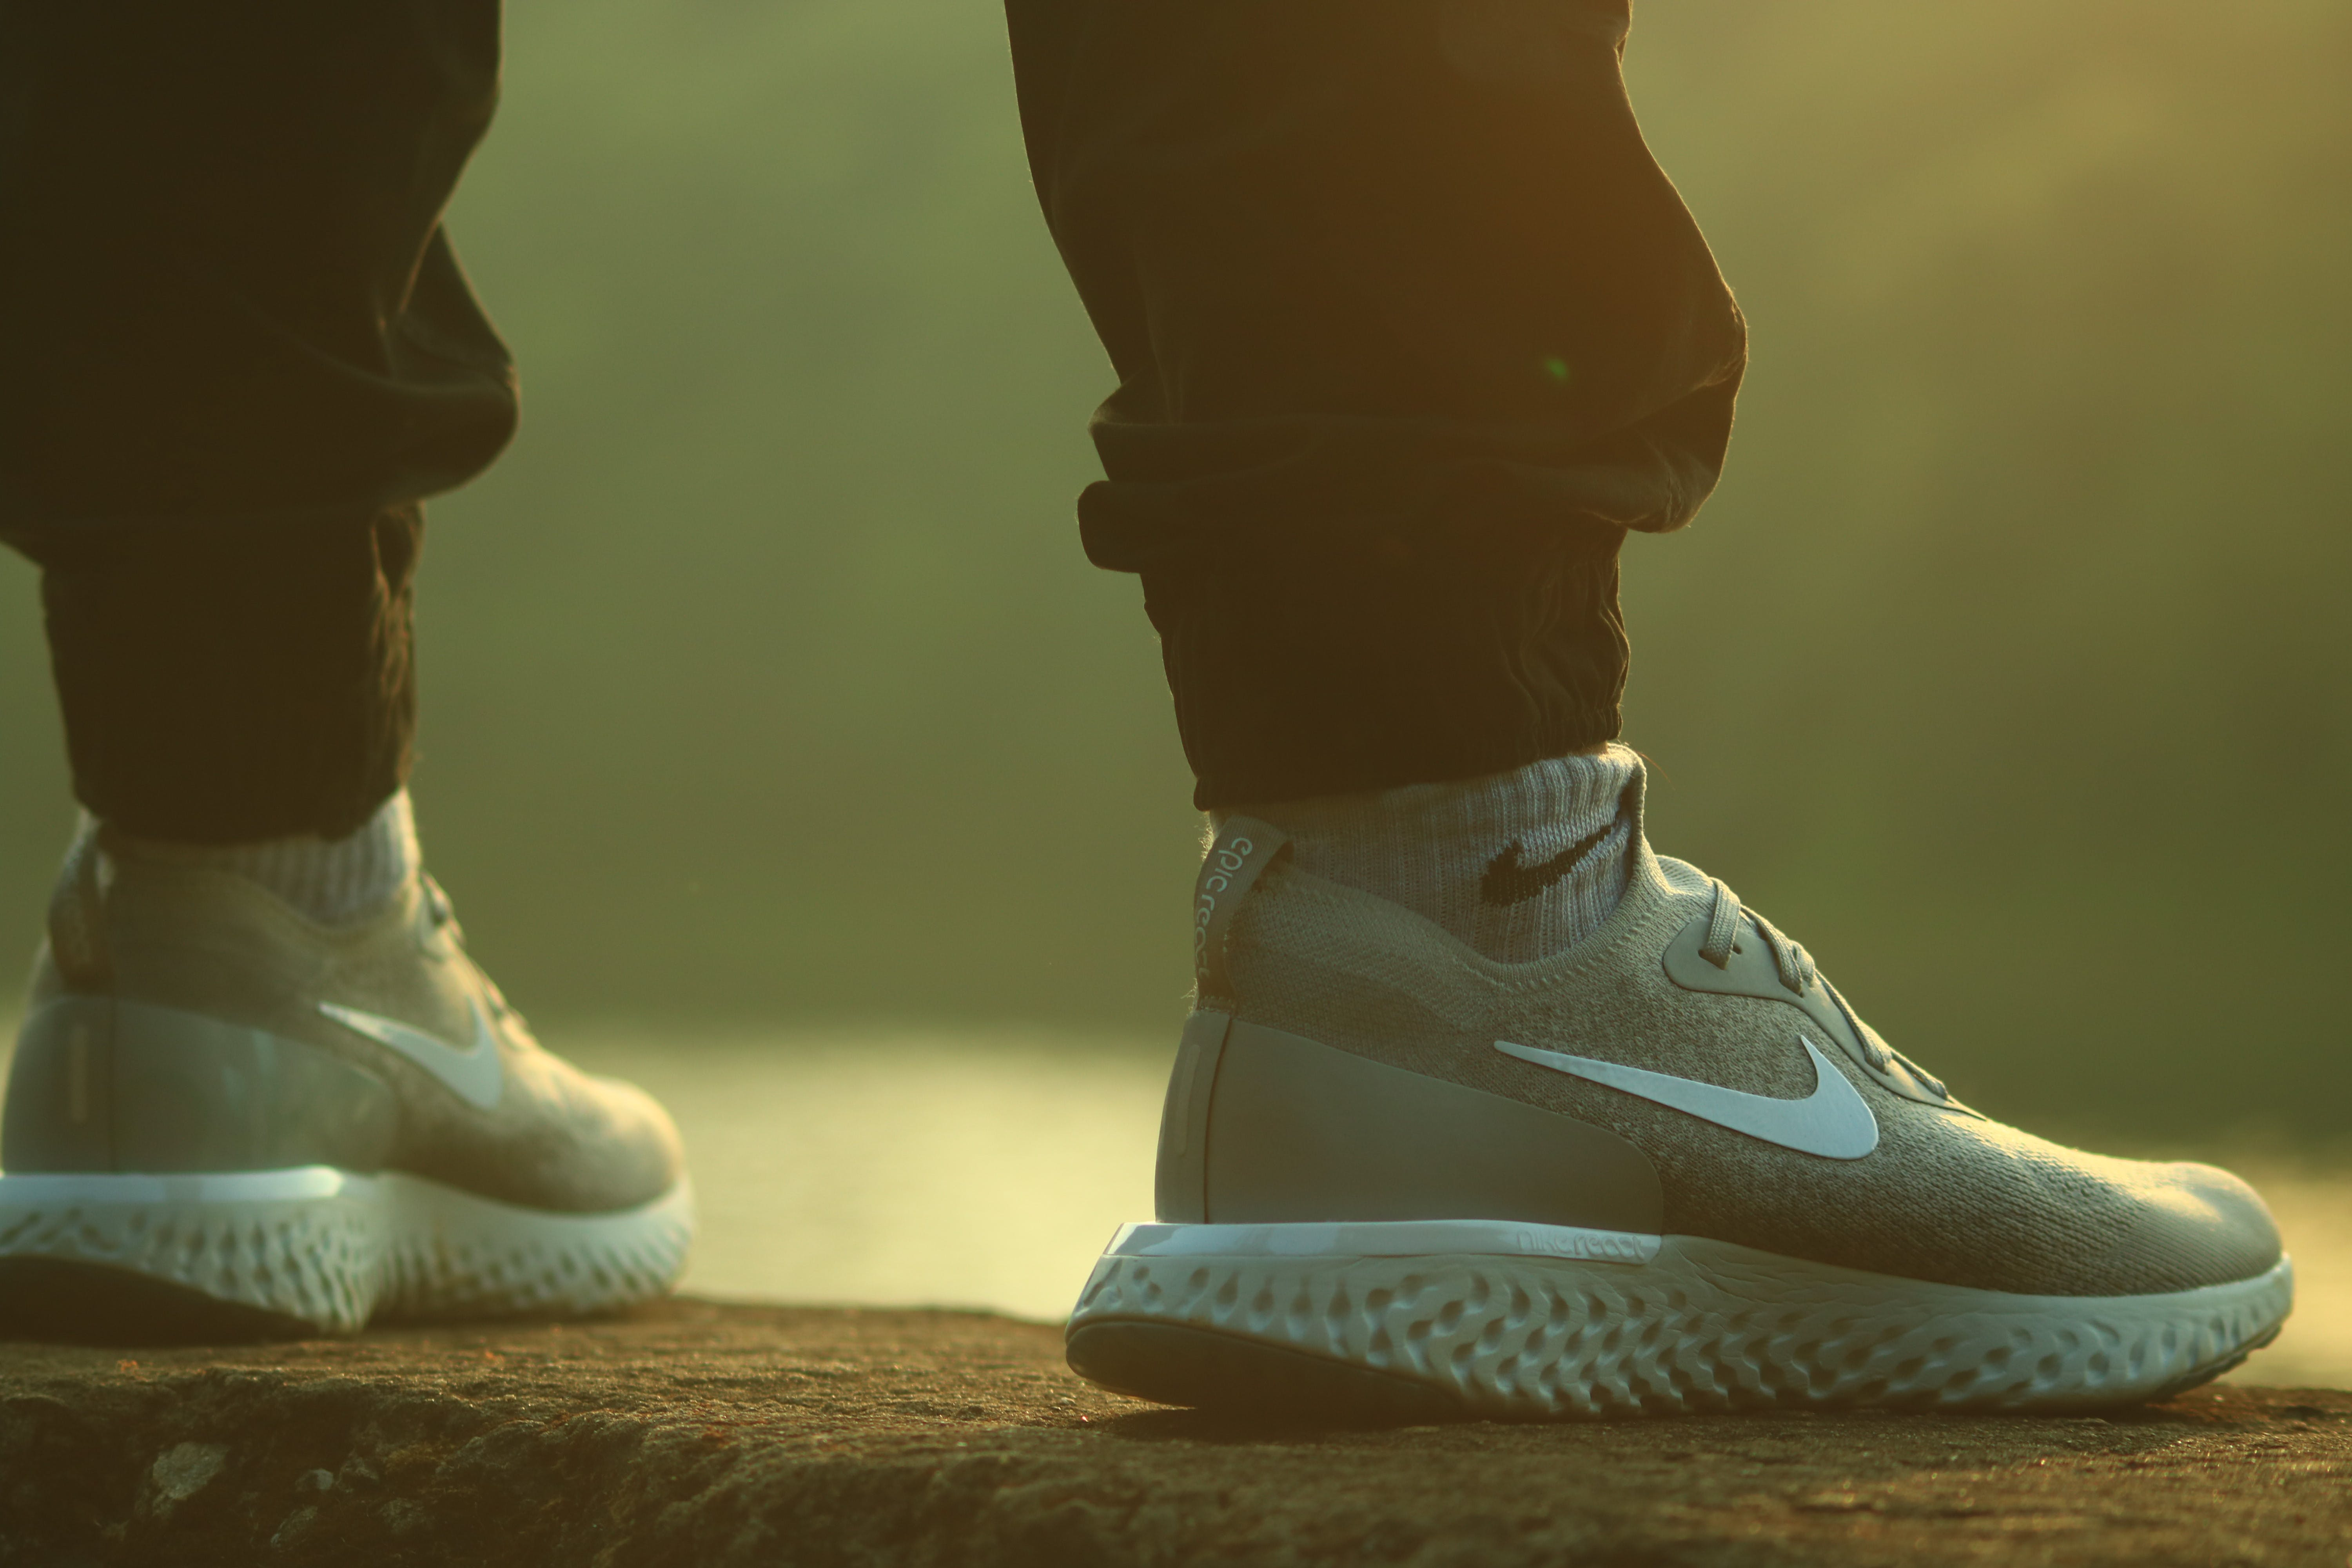 Standing Person Wearing Black Jogger Pants and Gray-and-white Nike React Running Shoes on Concrete Ground